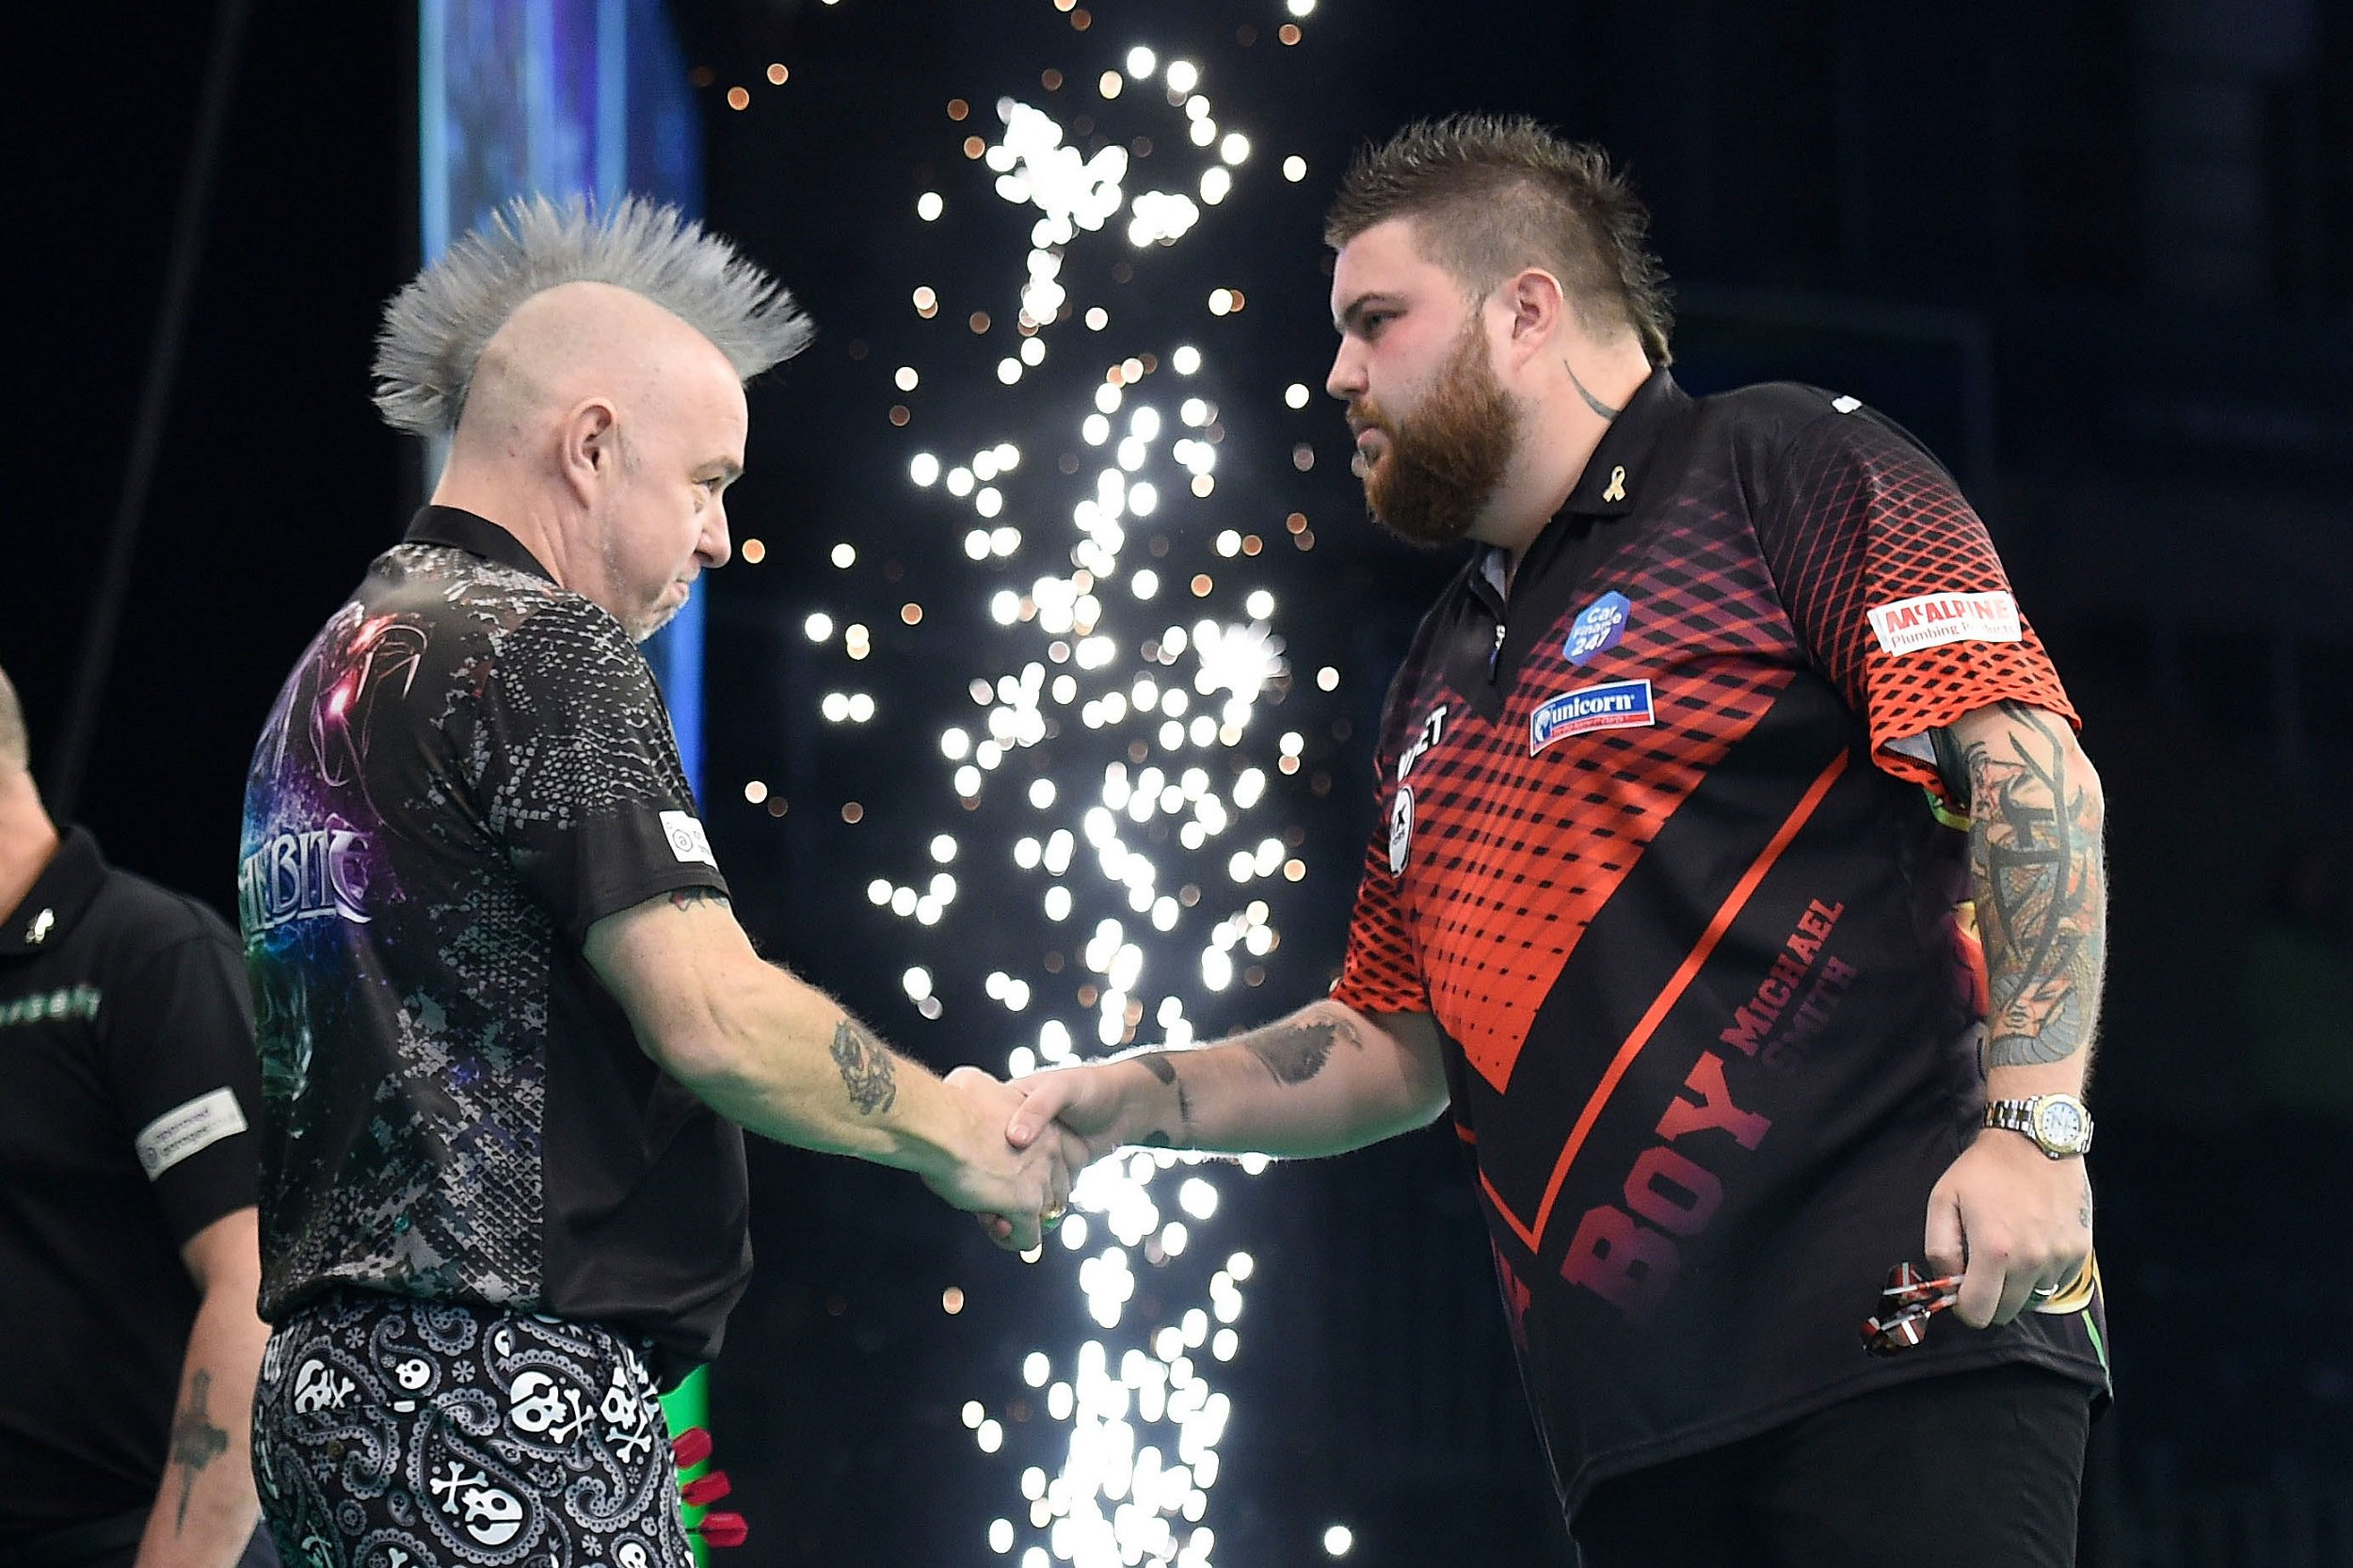 Peter Wright blasts 'freezing' conditions at Premier League Darts in Belfast